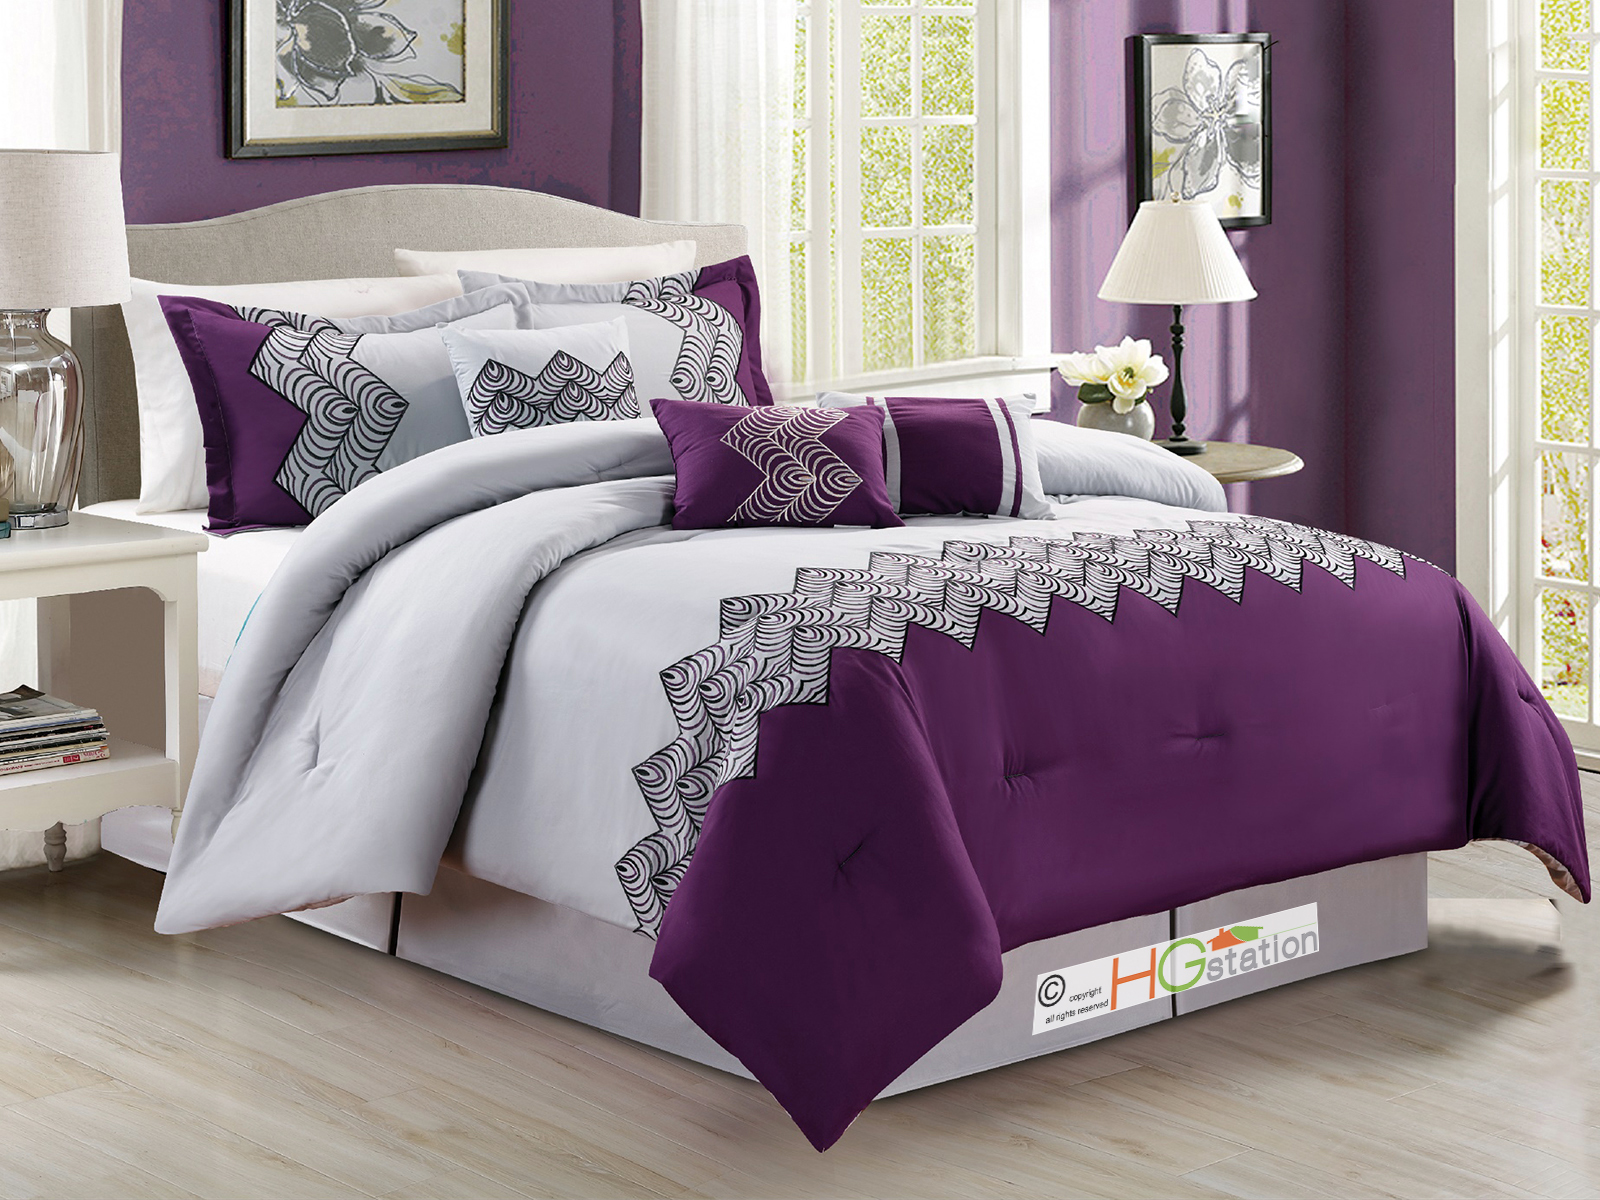 7 Pc Zigzag Chevron Embroidery Comforter Set Purple Light